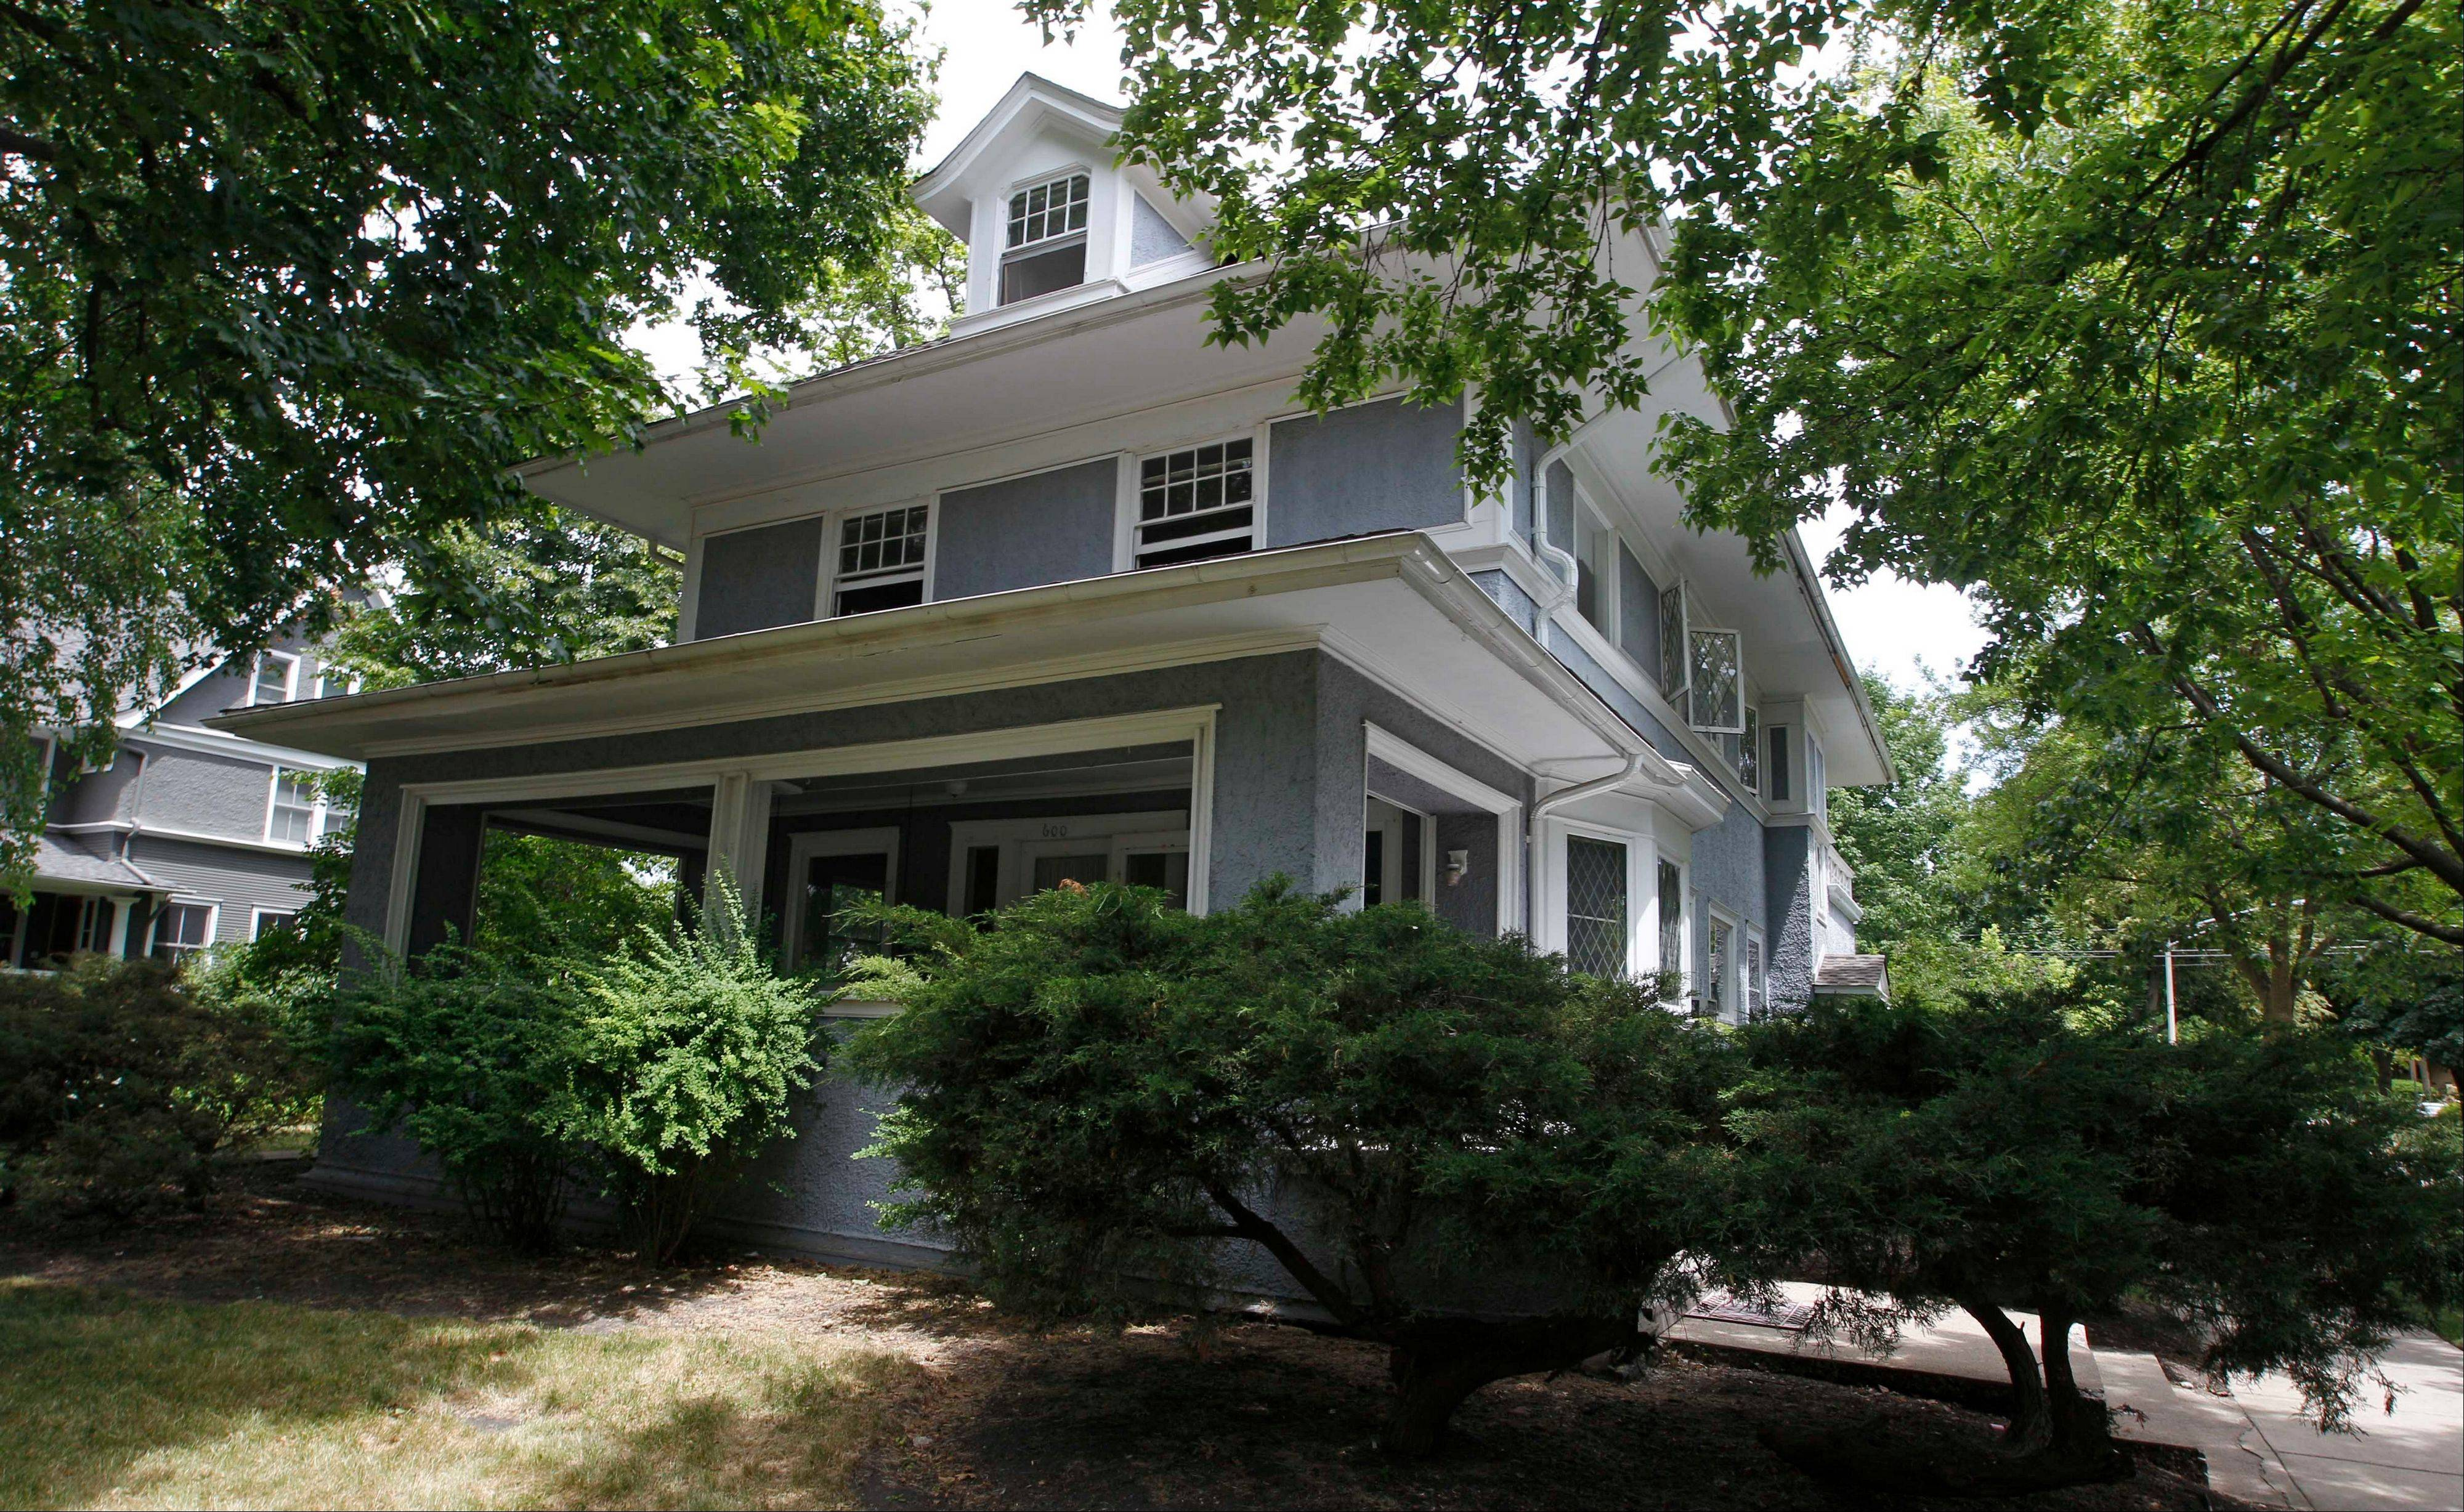 The new owners of Ernest Hemingway's boyhood home in Oak Park plan to make their house available to visits by Hemingway enthusiasts. Hemingway lived in the home until he graduated from high school and is believed to have written some of his earliest works in his third-floor bedroom.